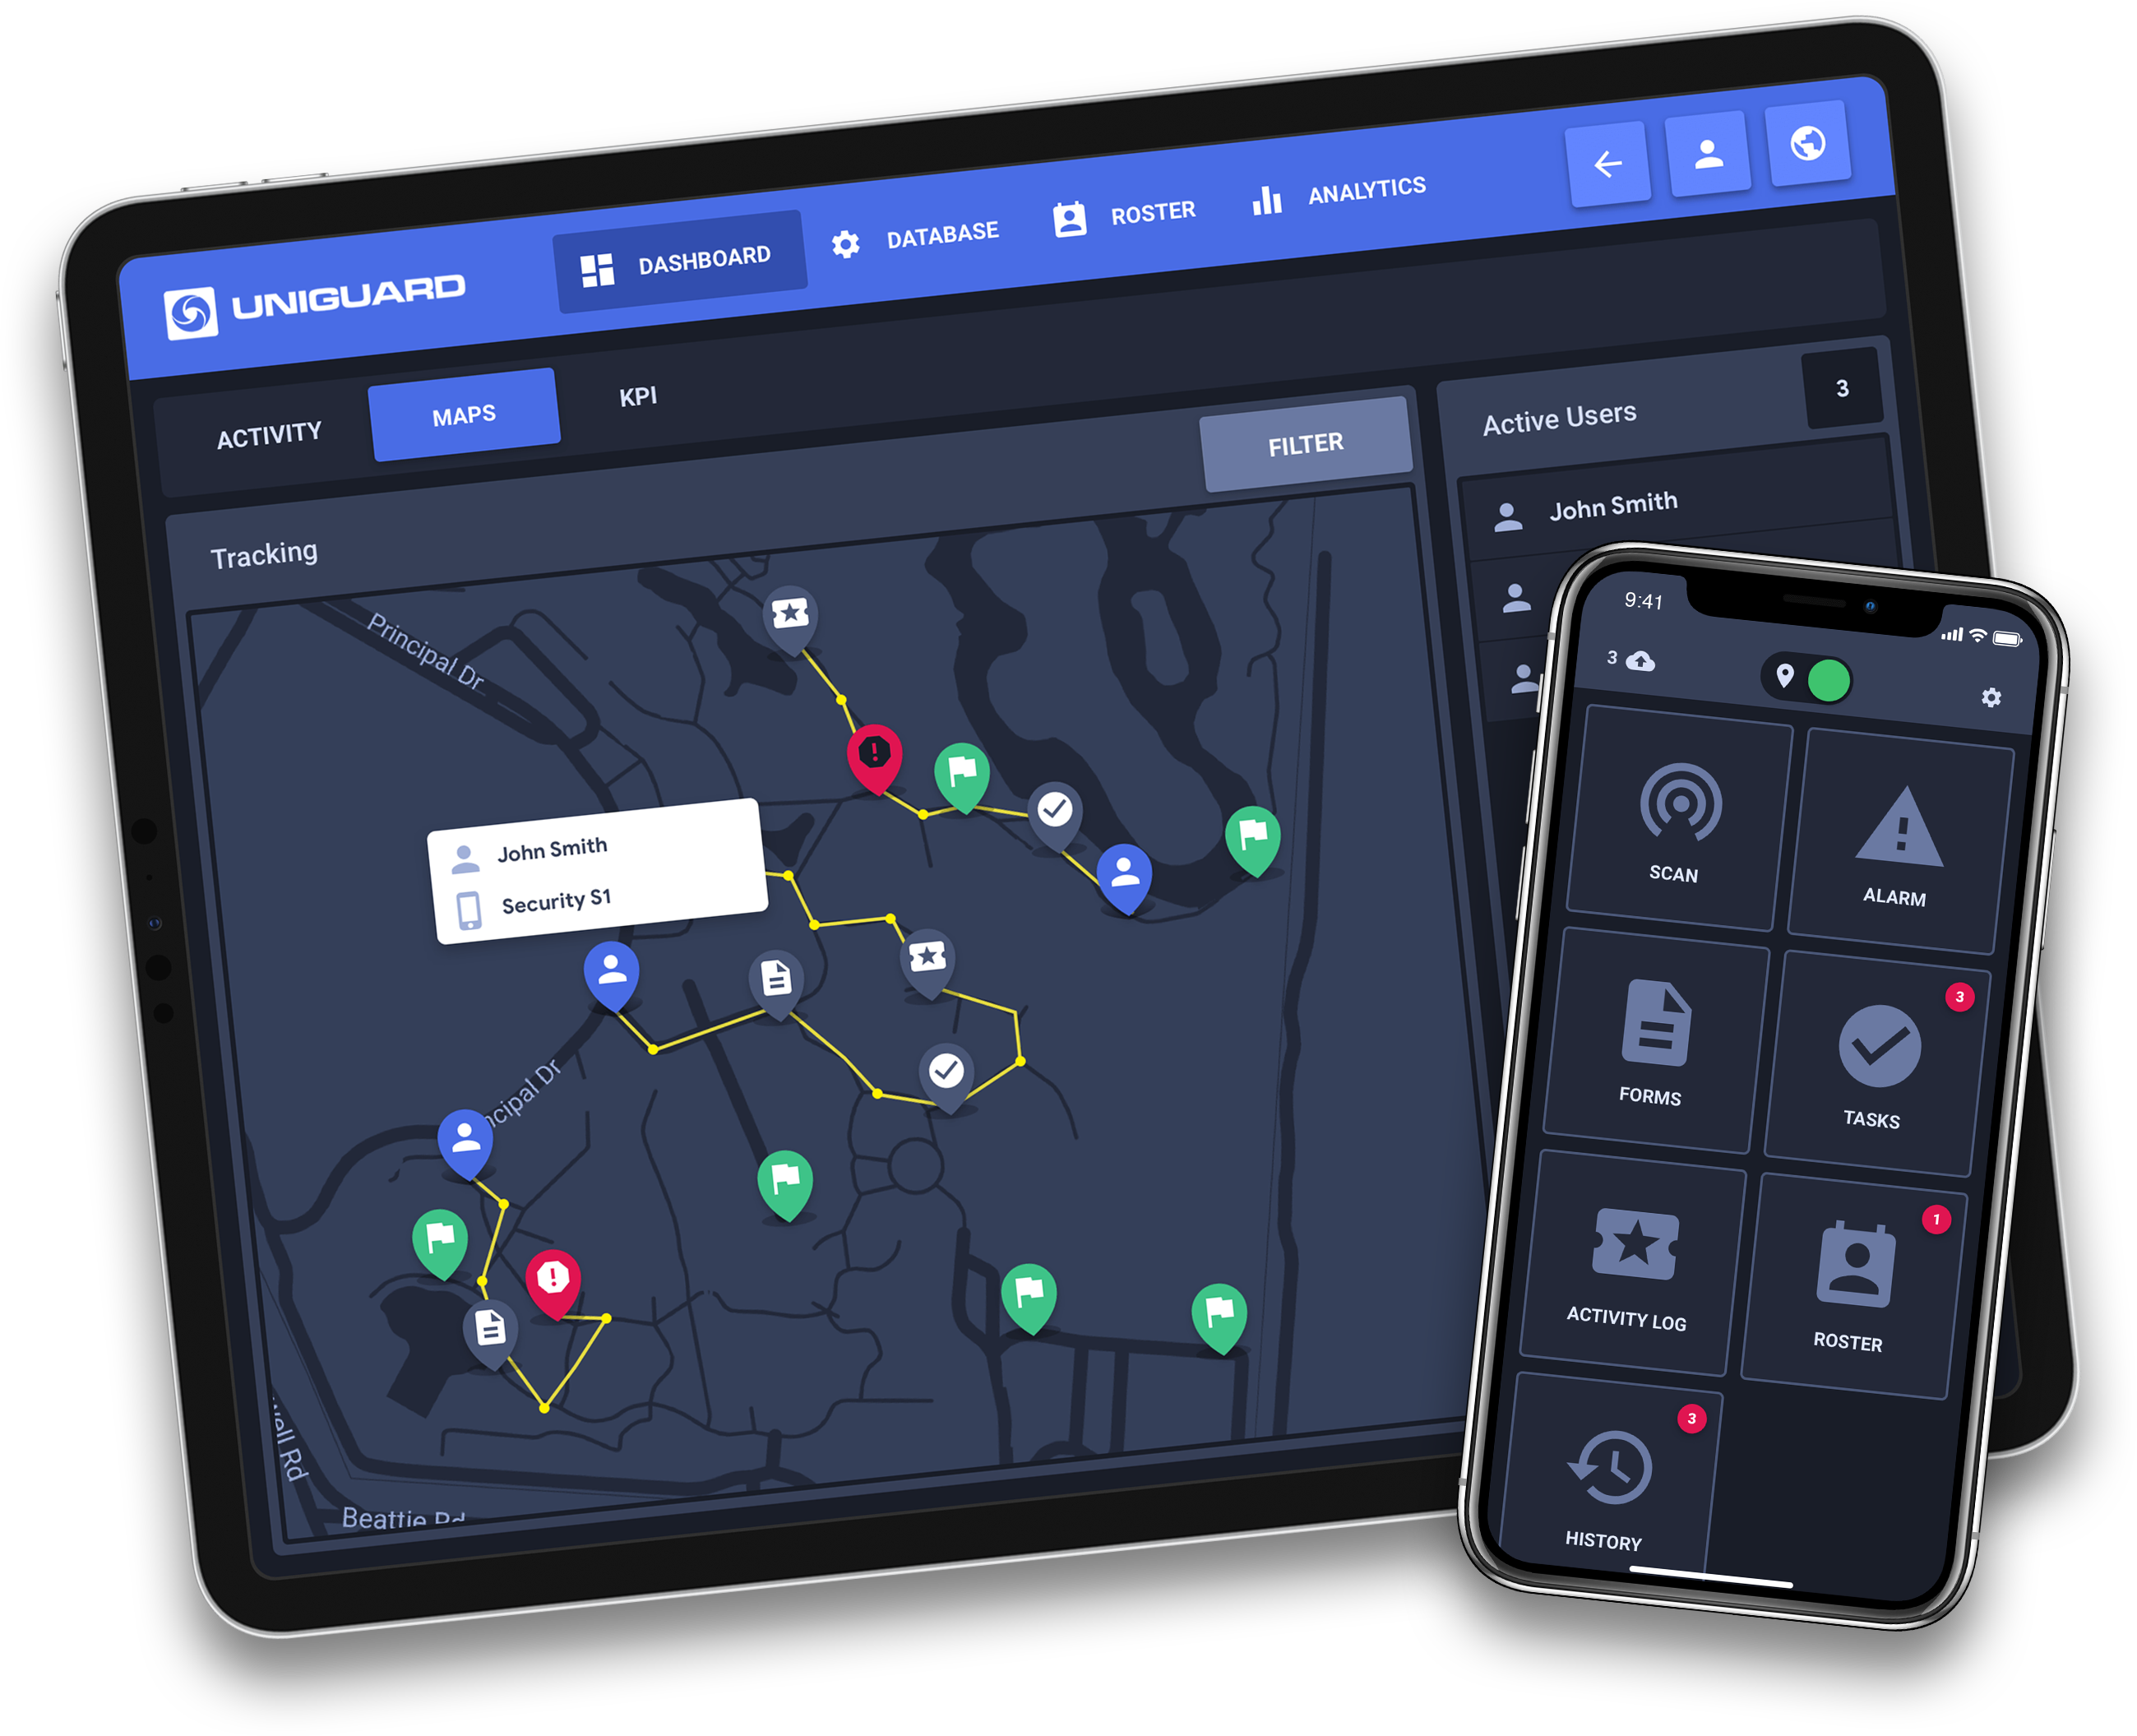 uniguard GPS live tracking with mobile app